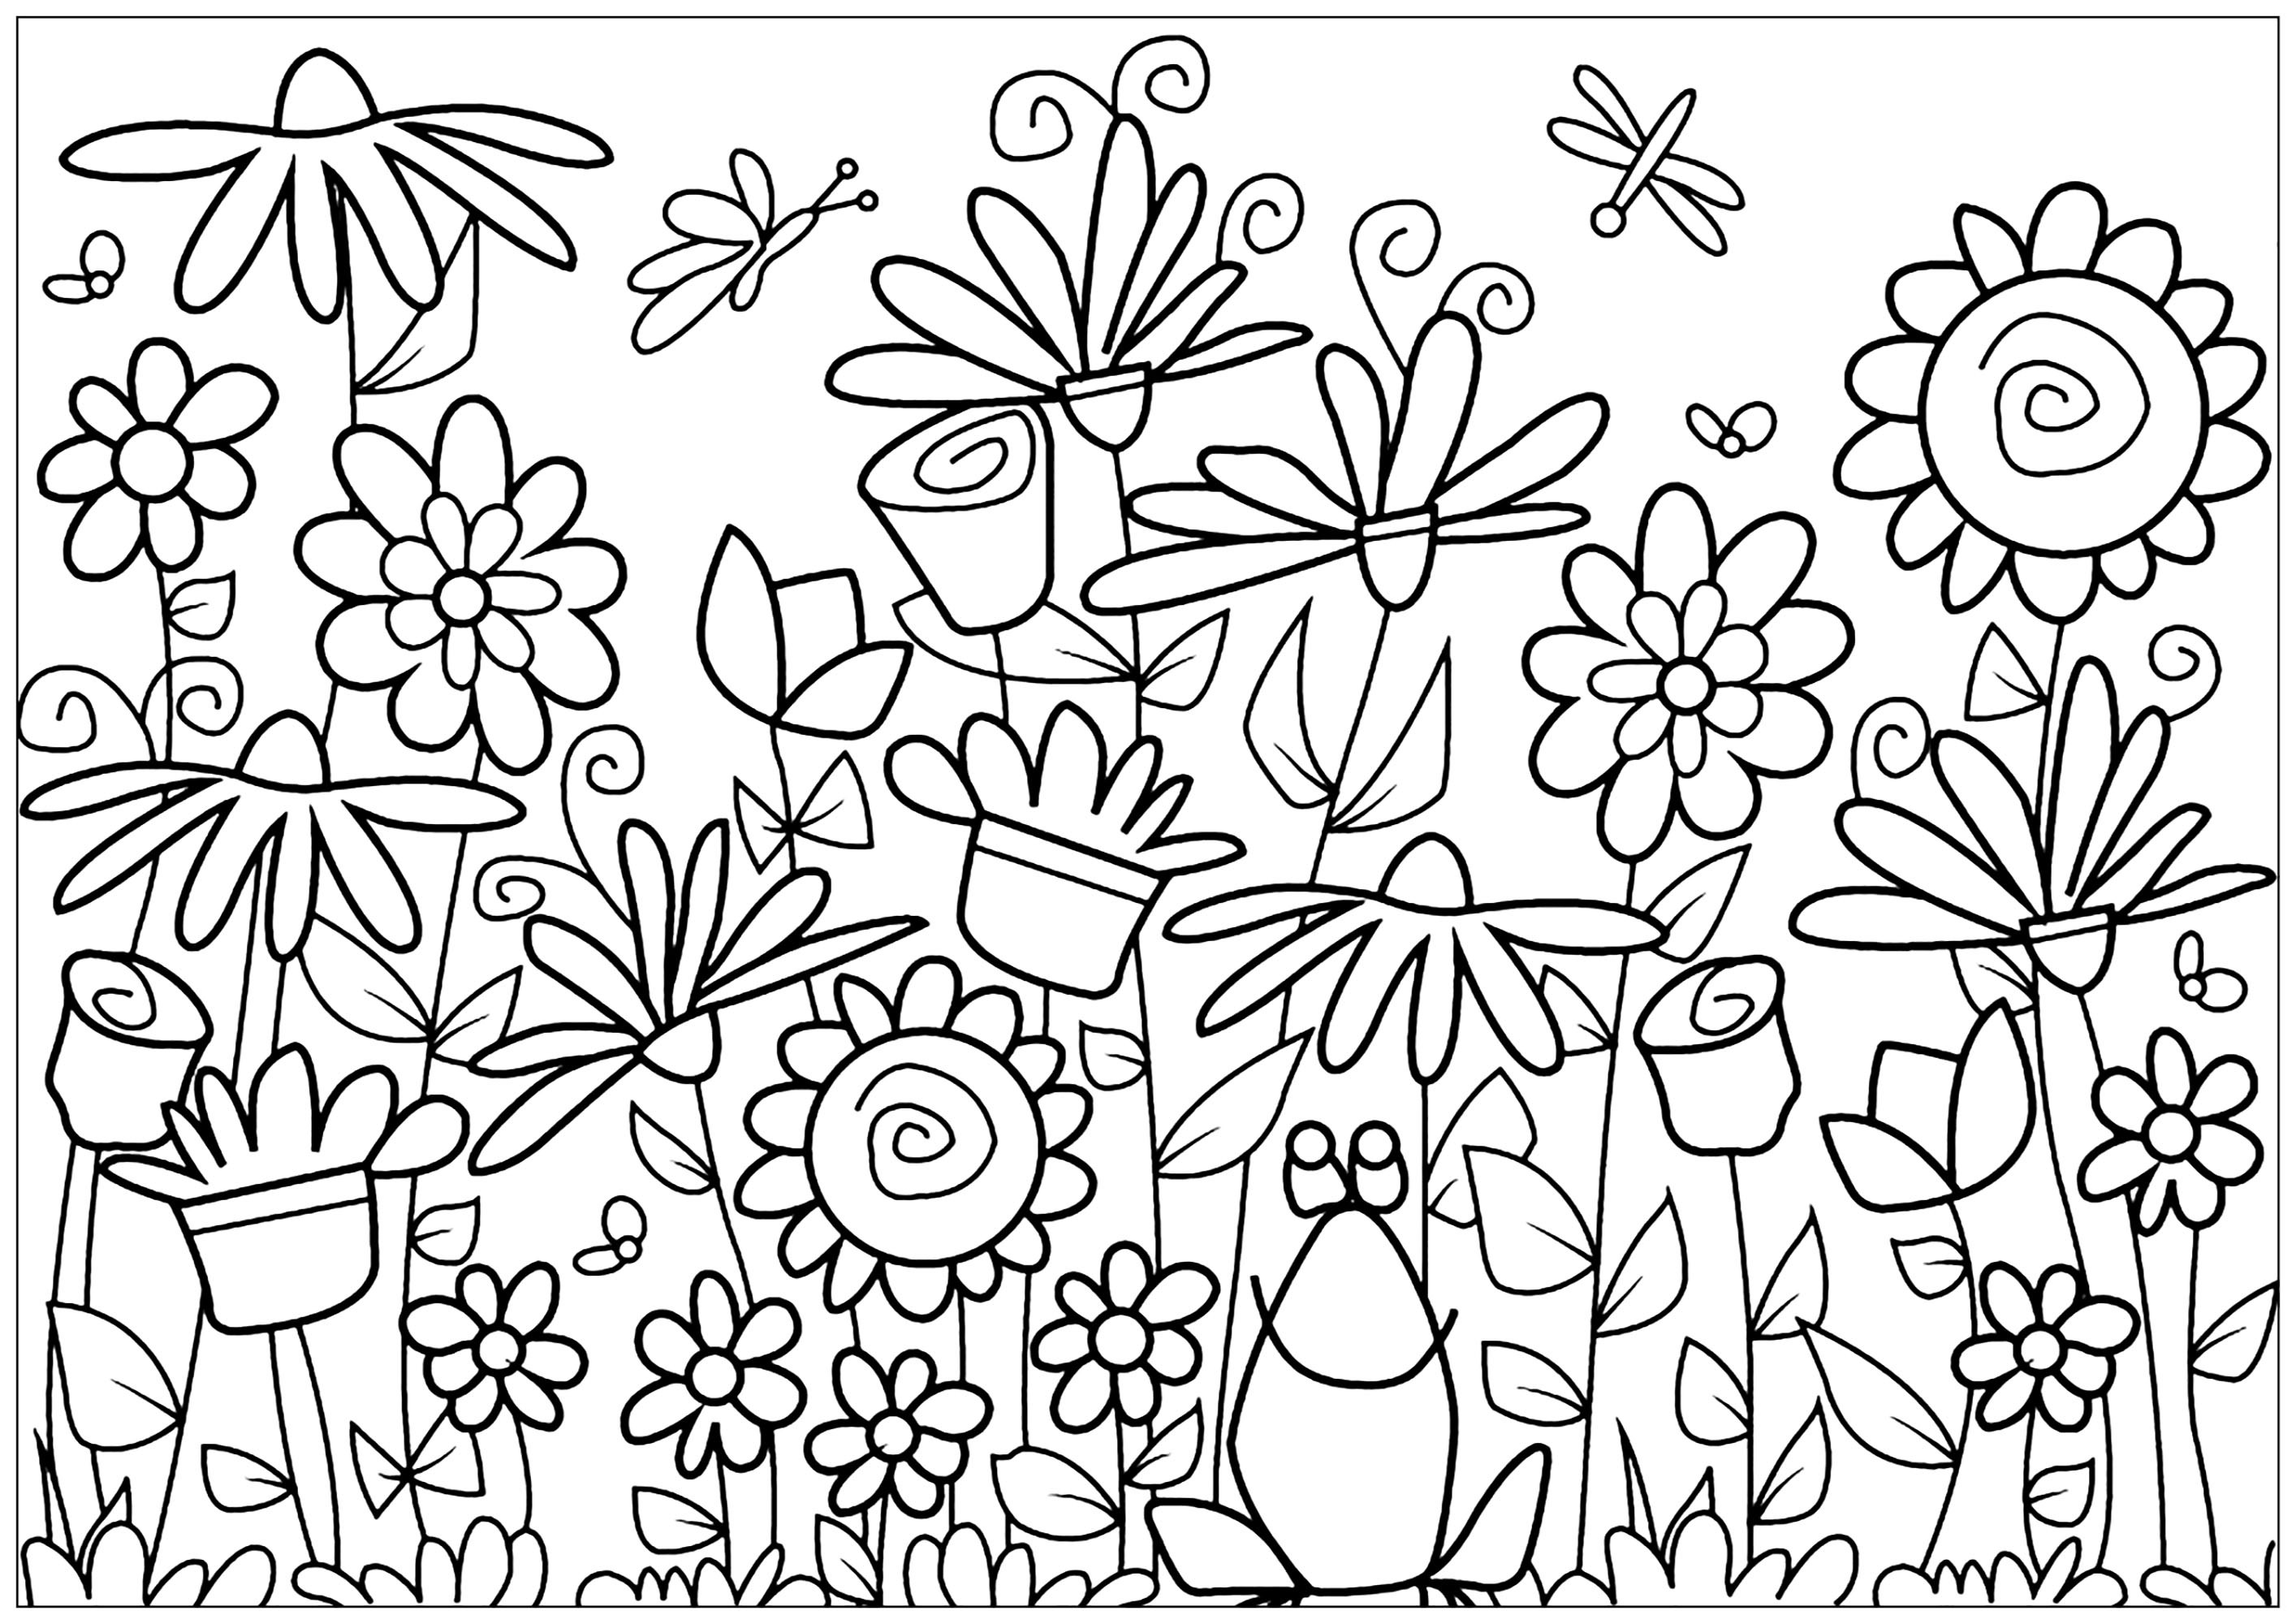 Coloring page with giant sunflowers, butterflies, daisies and tulips surrounding a frog